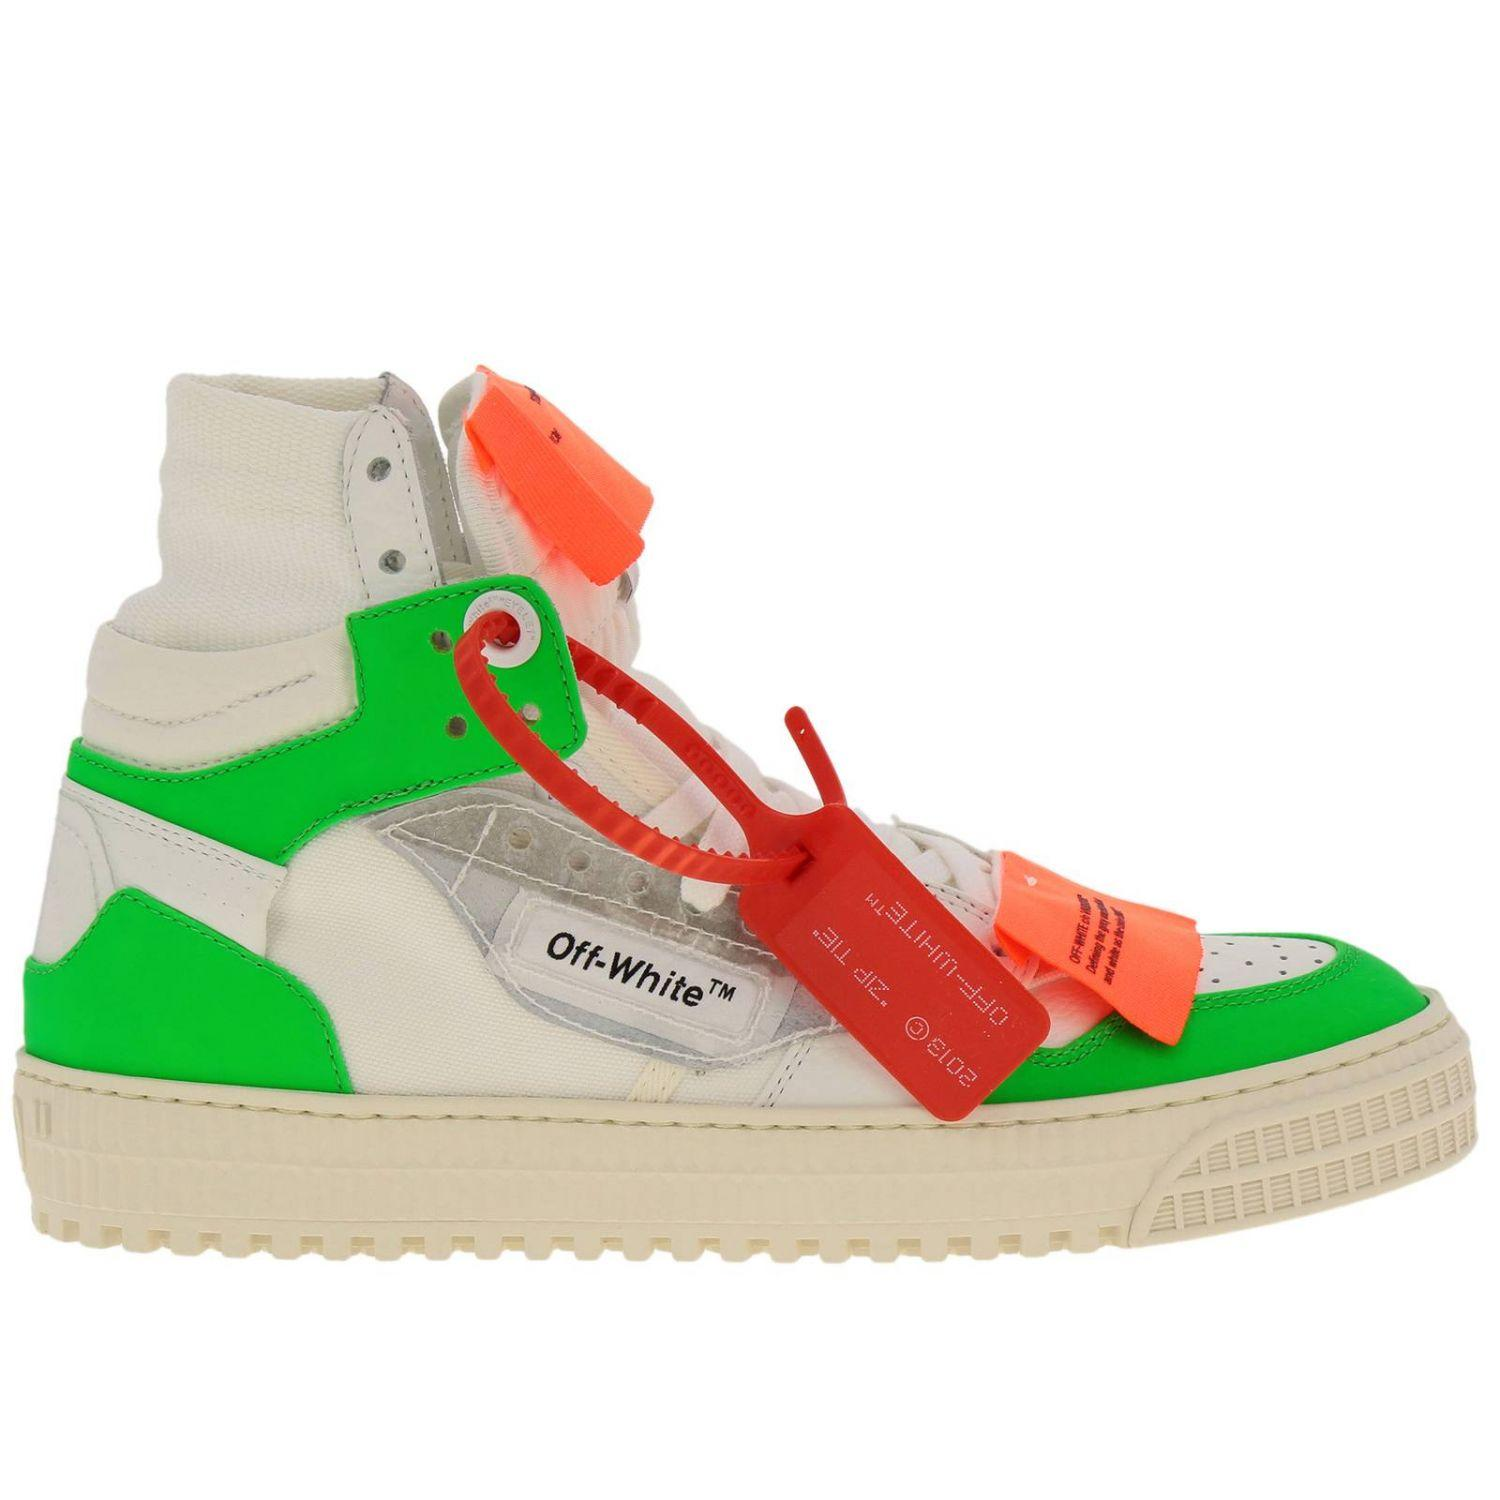 658a608a2e1e Lyst - Off-White c o Virgil Abloh Sneakers Shoes Women in Green